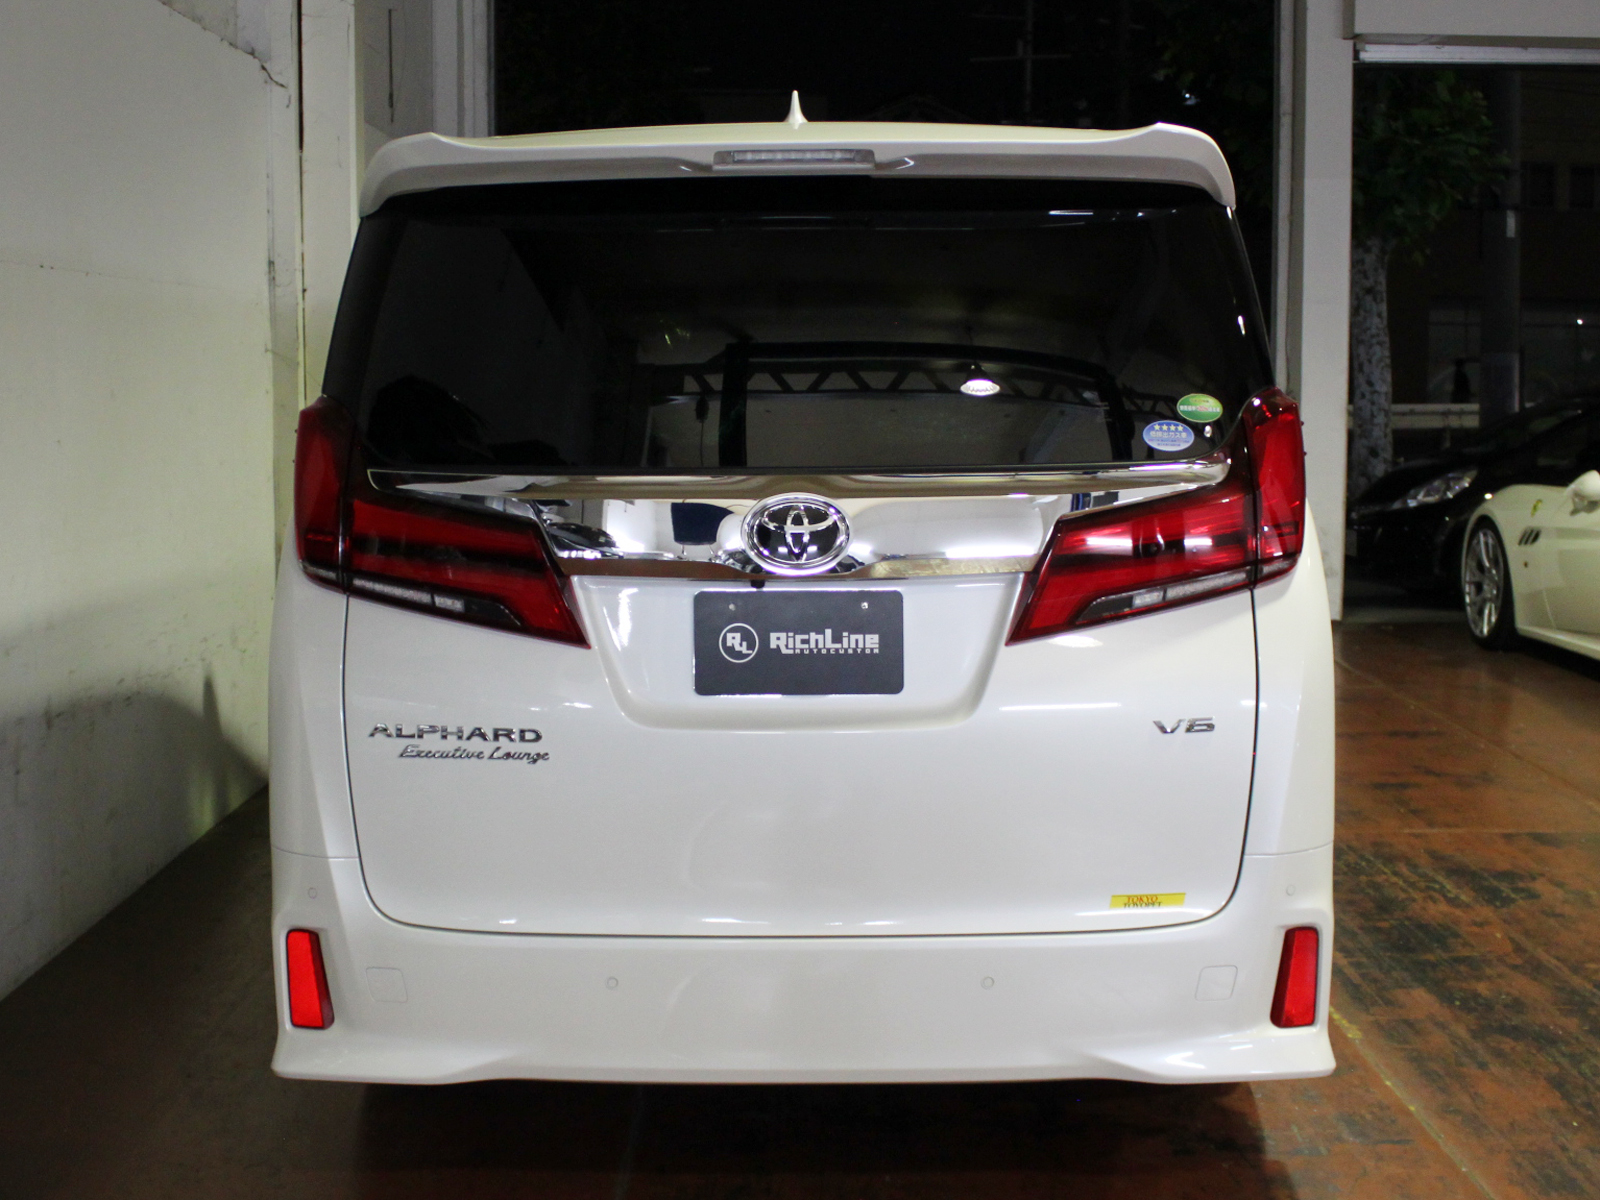 ALPHARD Executive Lounge Sリッチライン